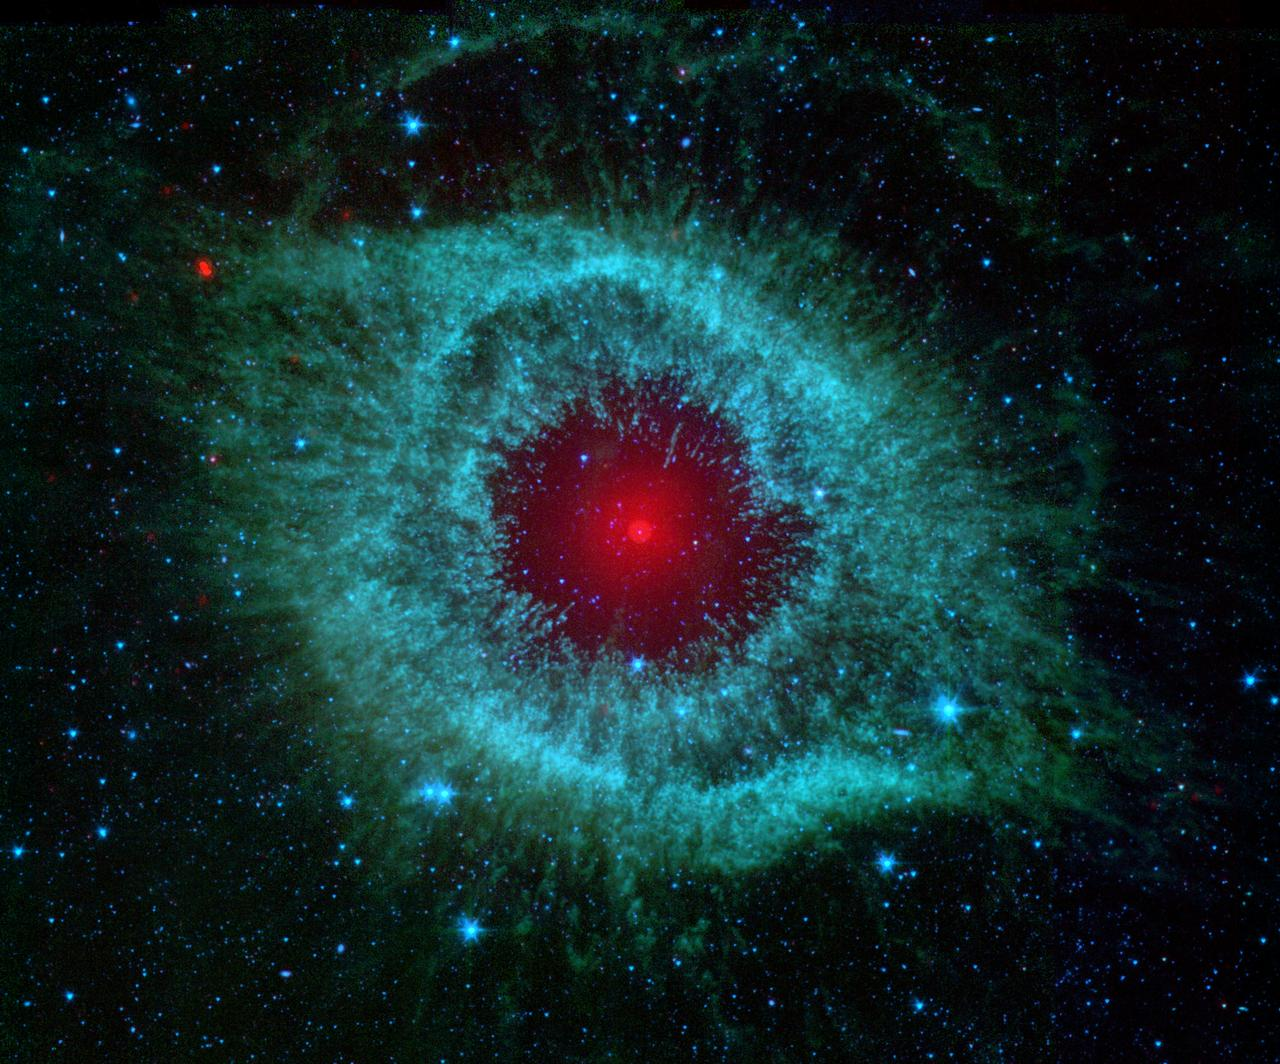 This infrared image from NASA Spitzer Space Telescope shows the Helix nebula, a cosmic starlet often photographed by amateur astronomers for its vivid colors and eerie resemblance to a giant eye.